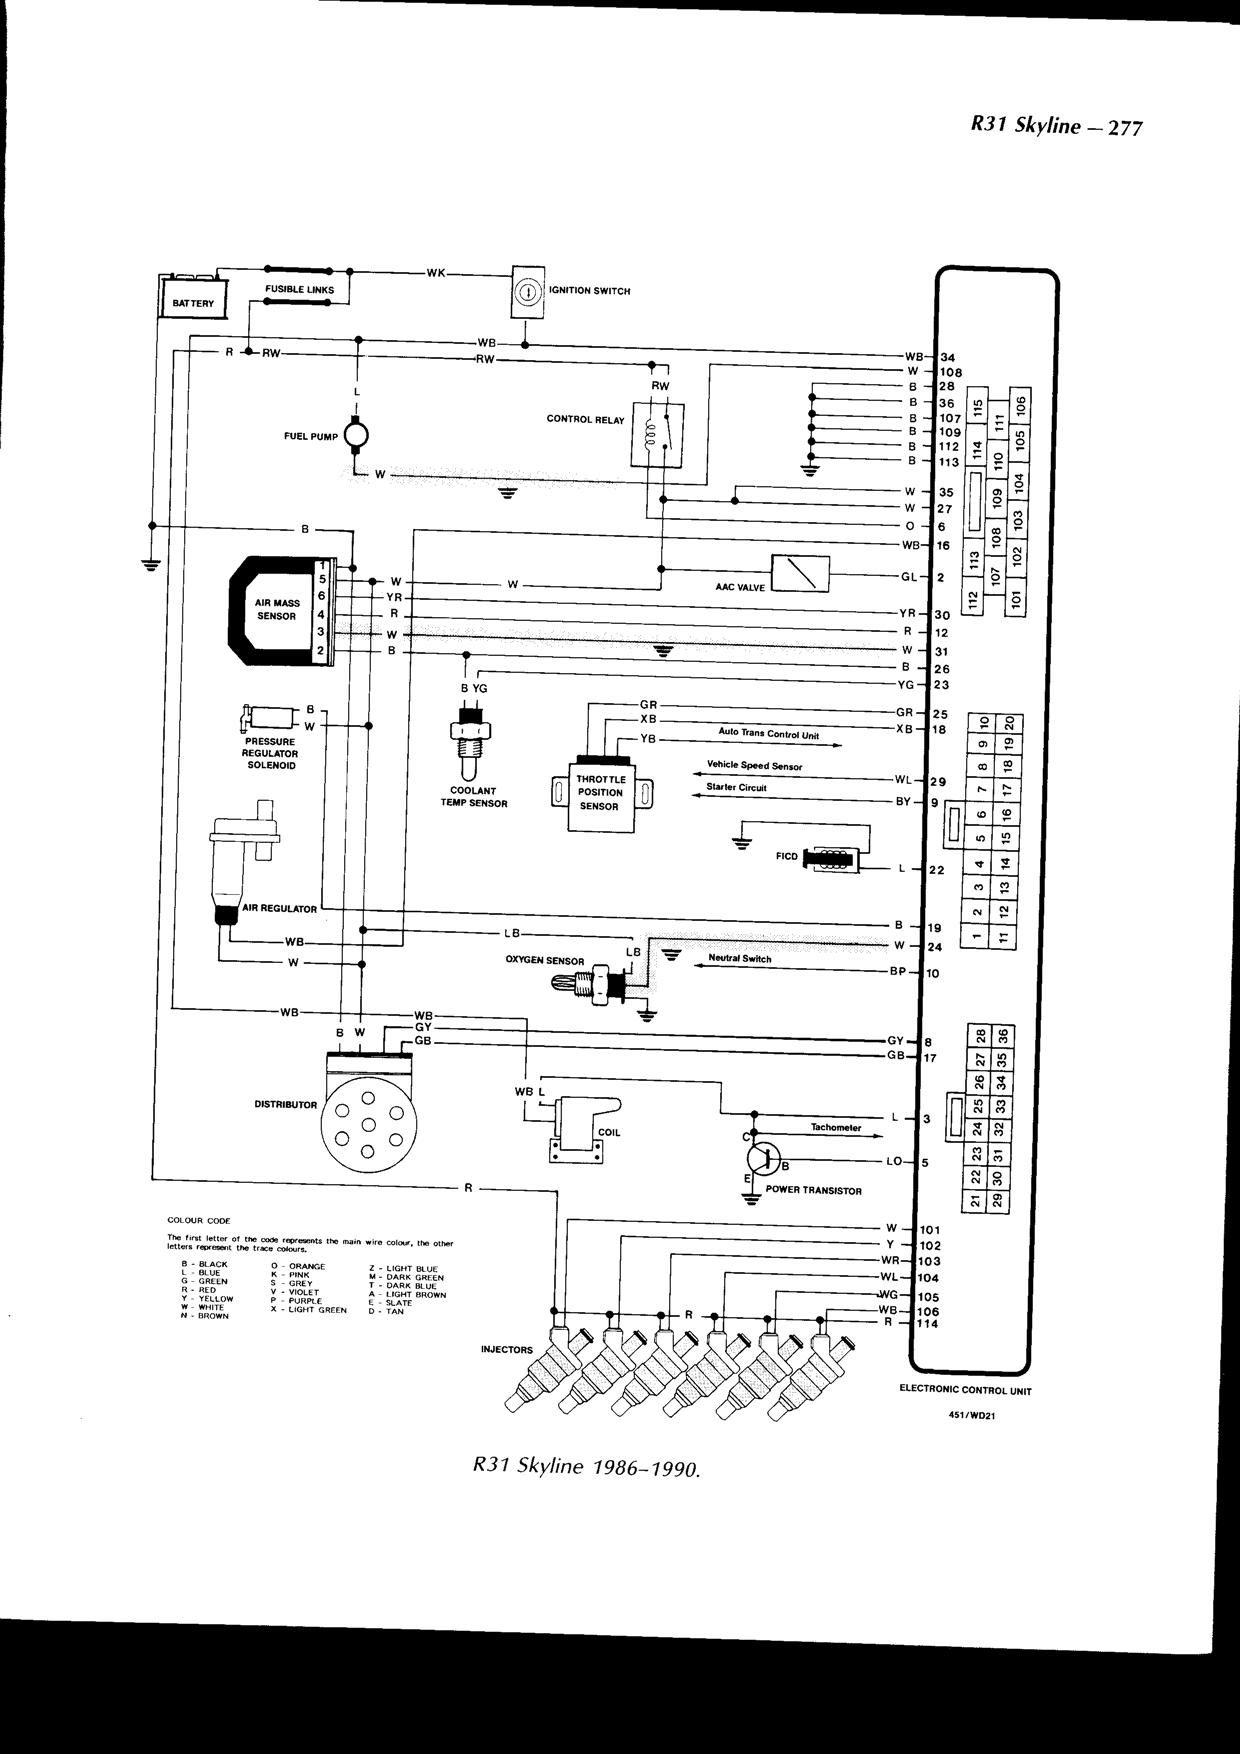 Nissan 1400 electrical wiring diagram | Nissan | Electrical ... on